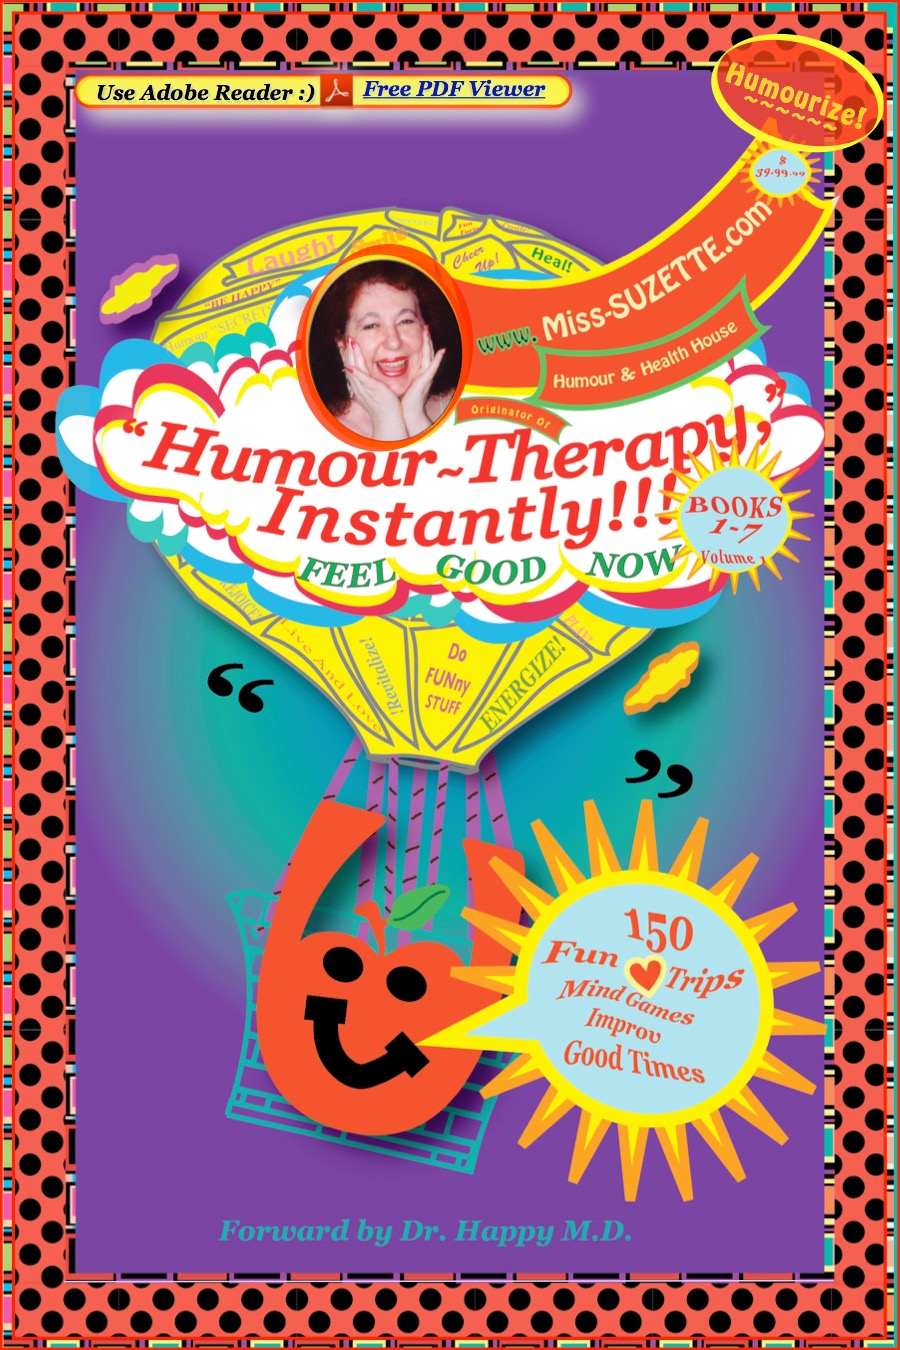 """Humour-Therapy, Instantly!!!"" with Miss-SUZETTE.com"